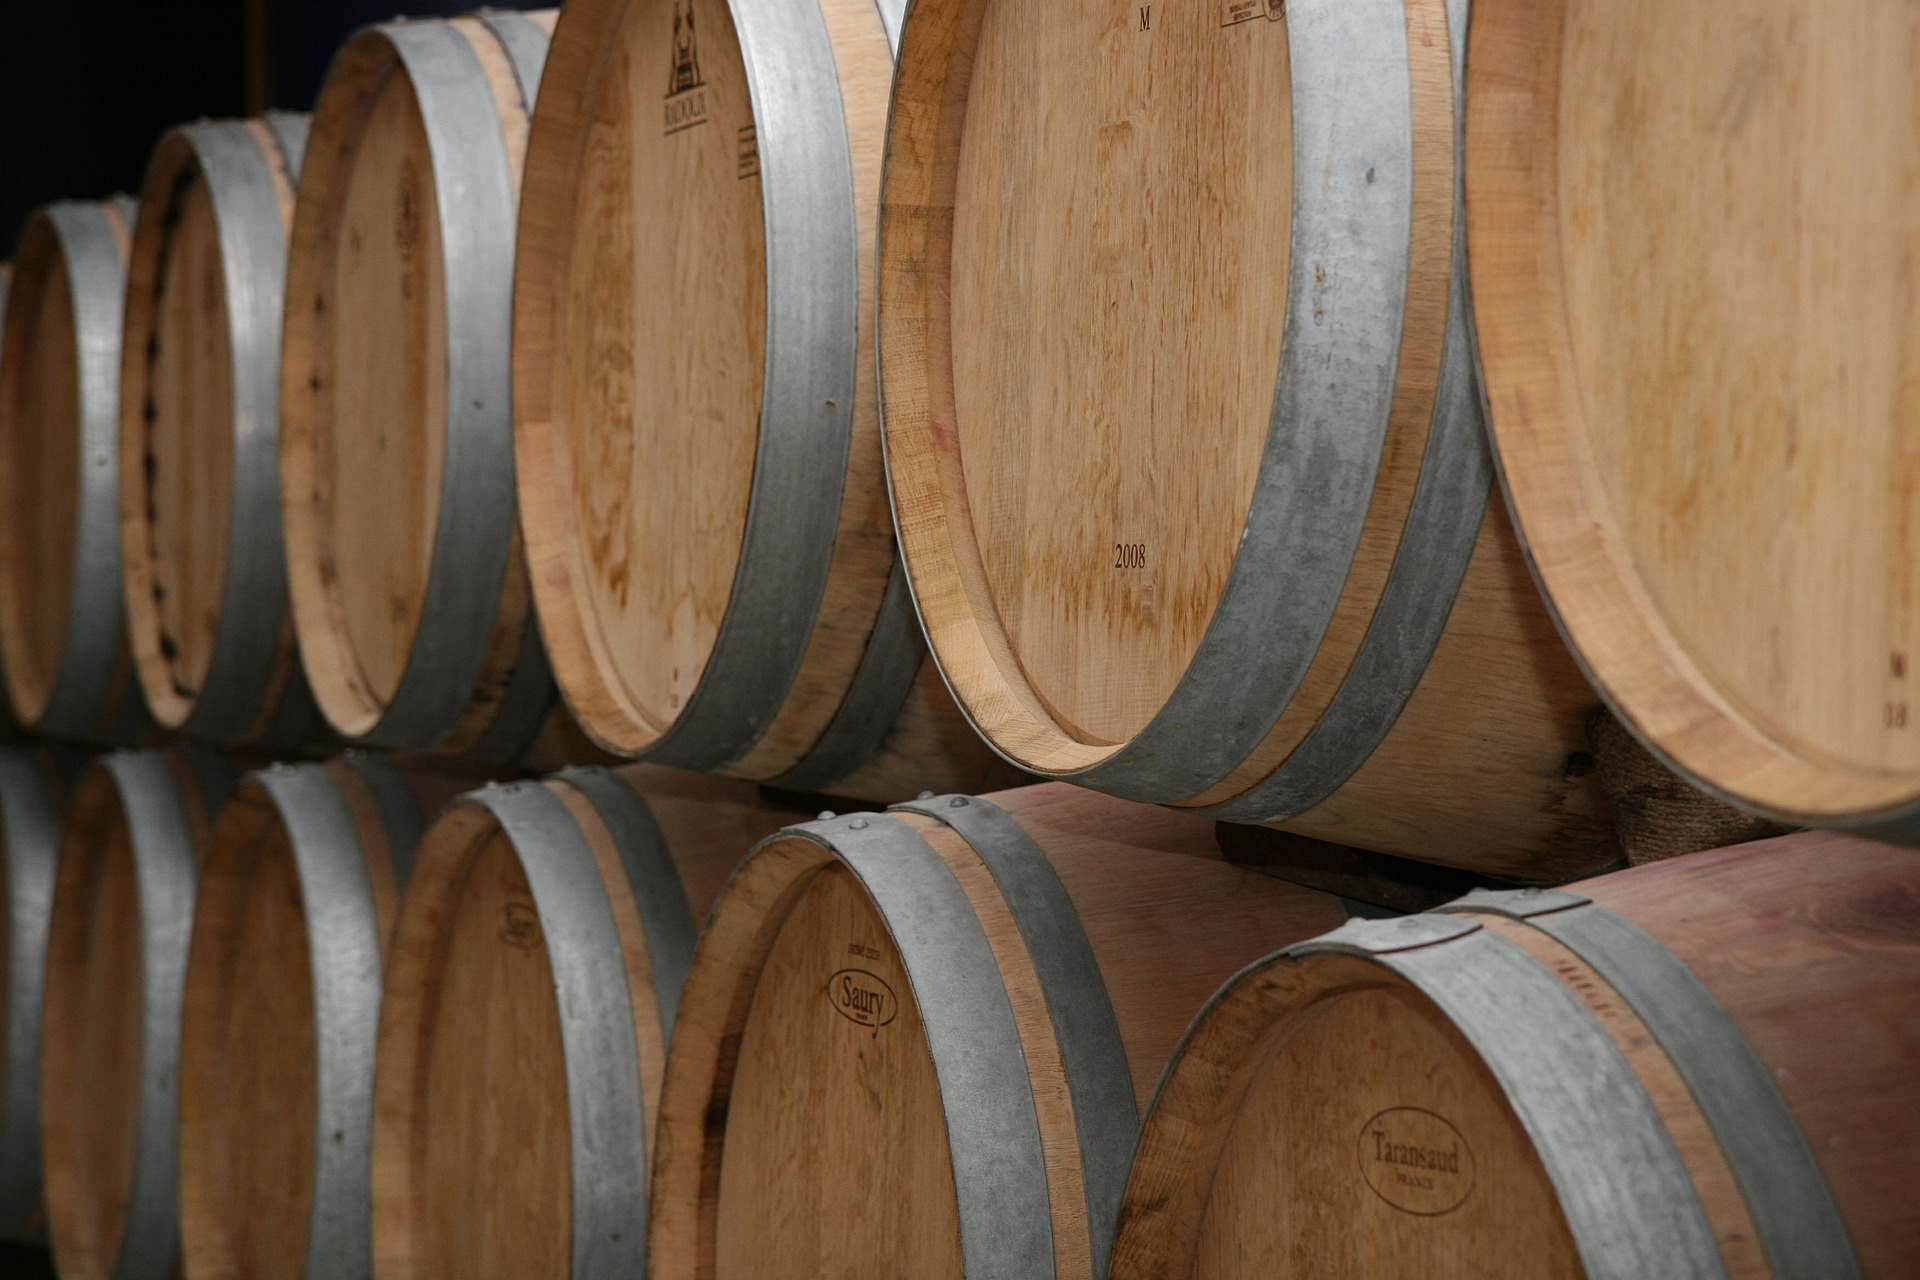 Weekly Economic News Roundup and wine production